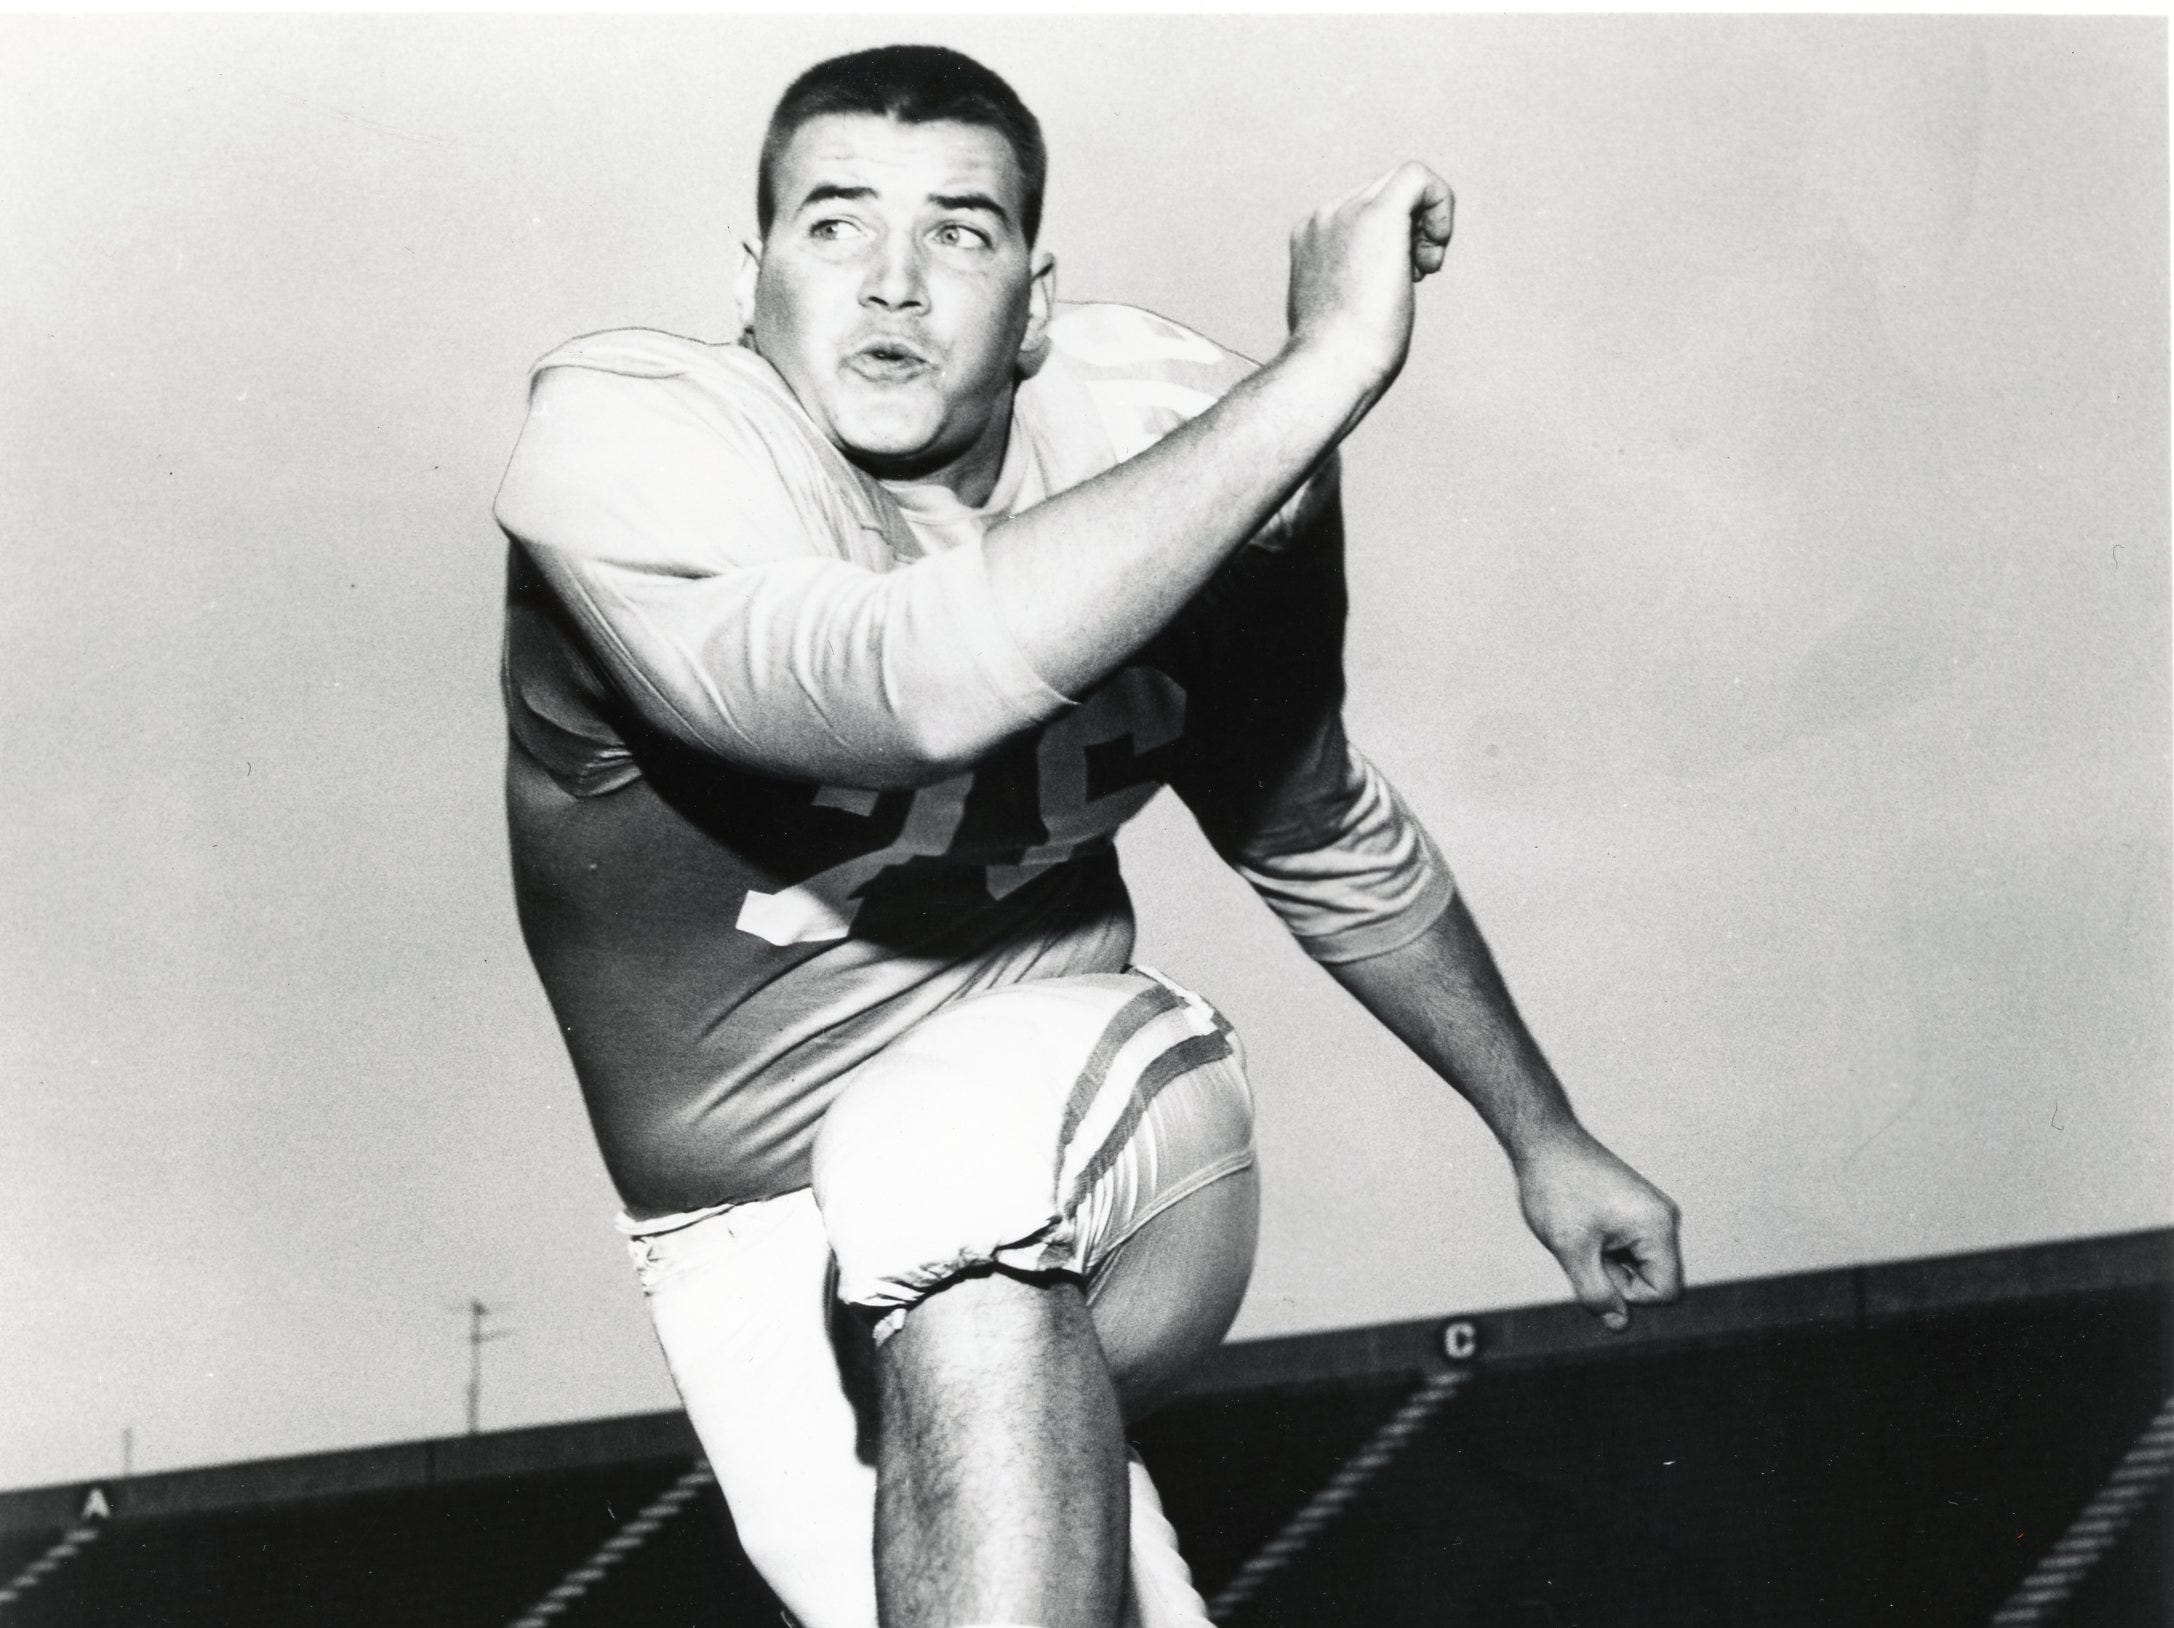 Tennessee tackle, Jerry Holloway, 1968.